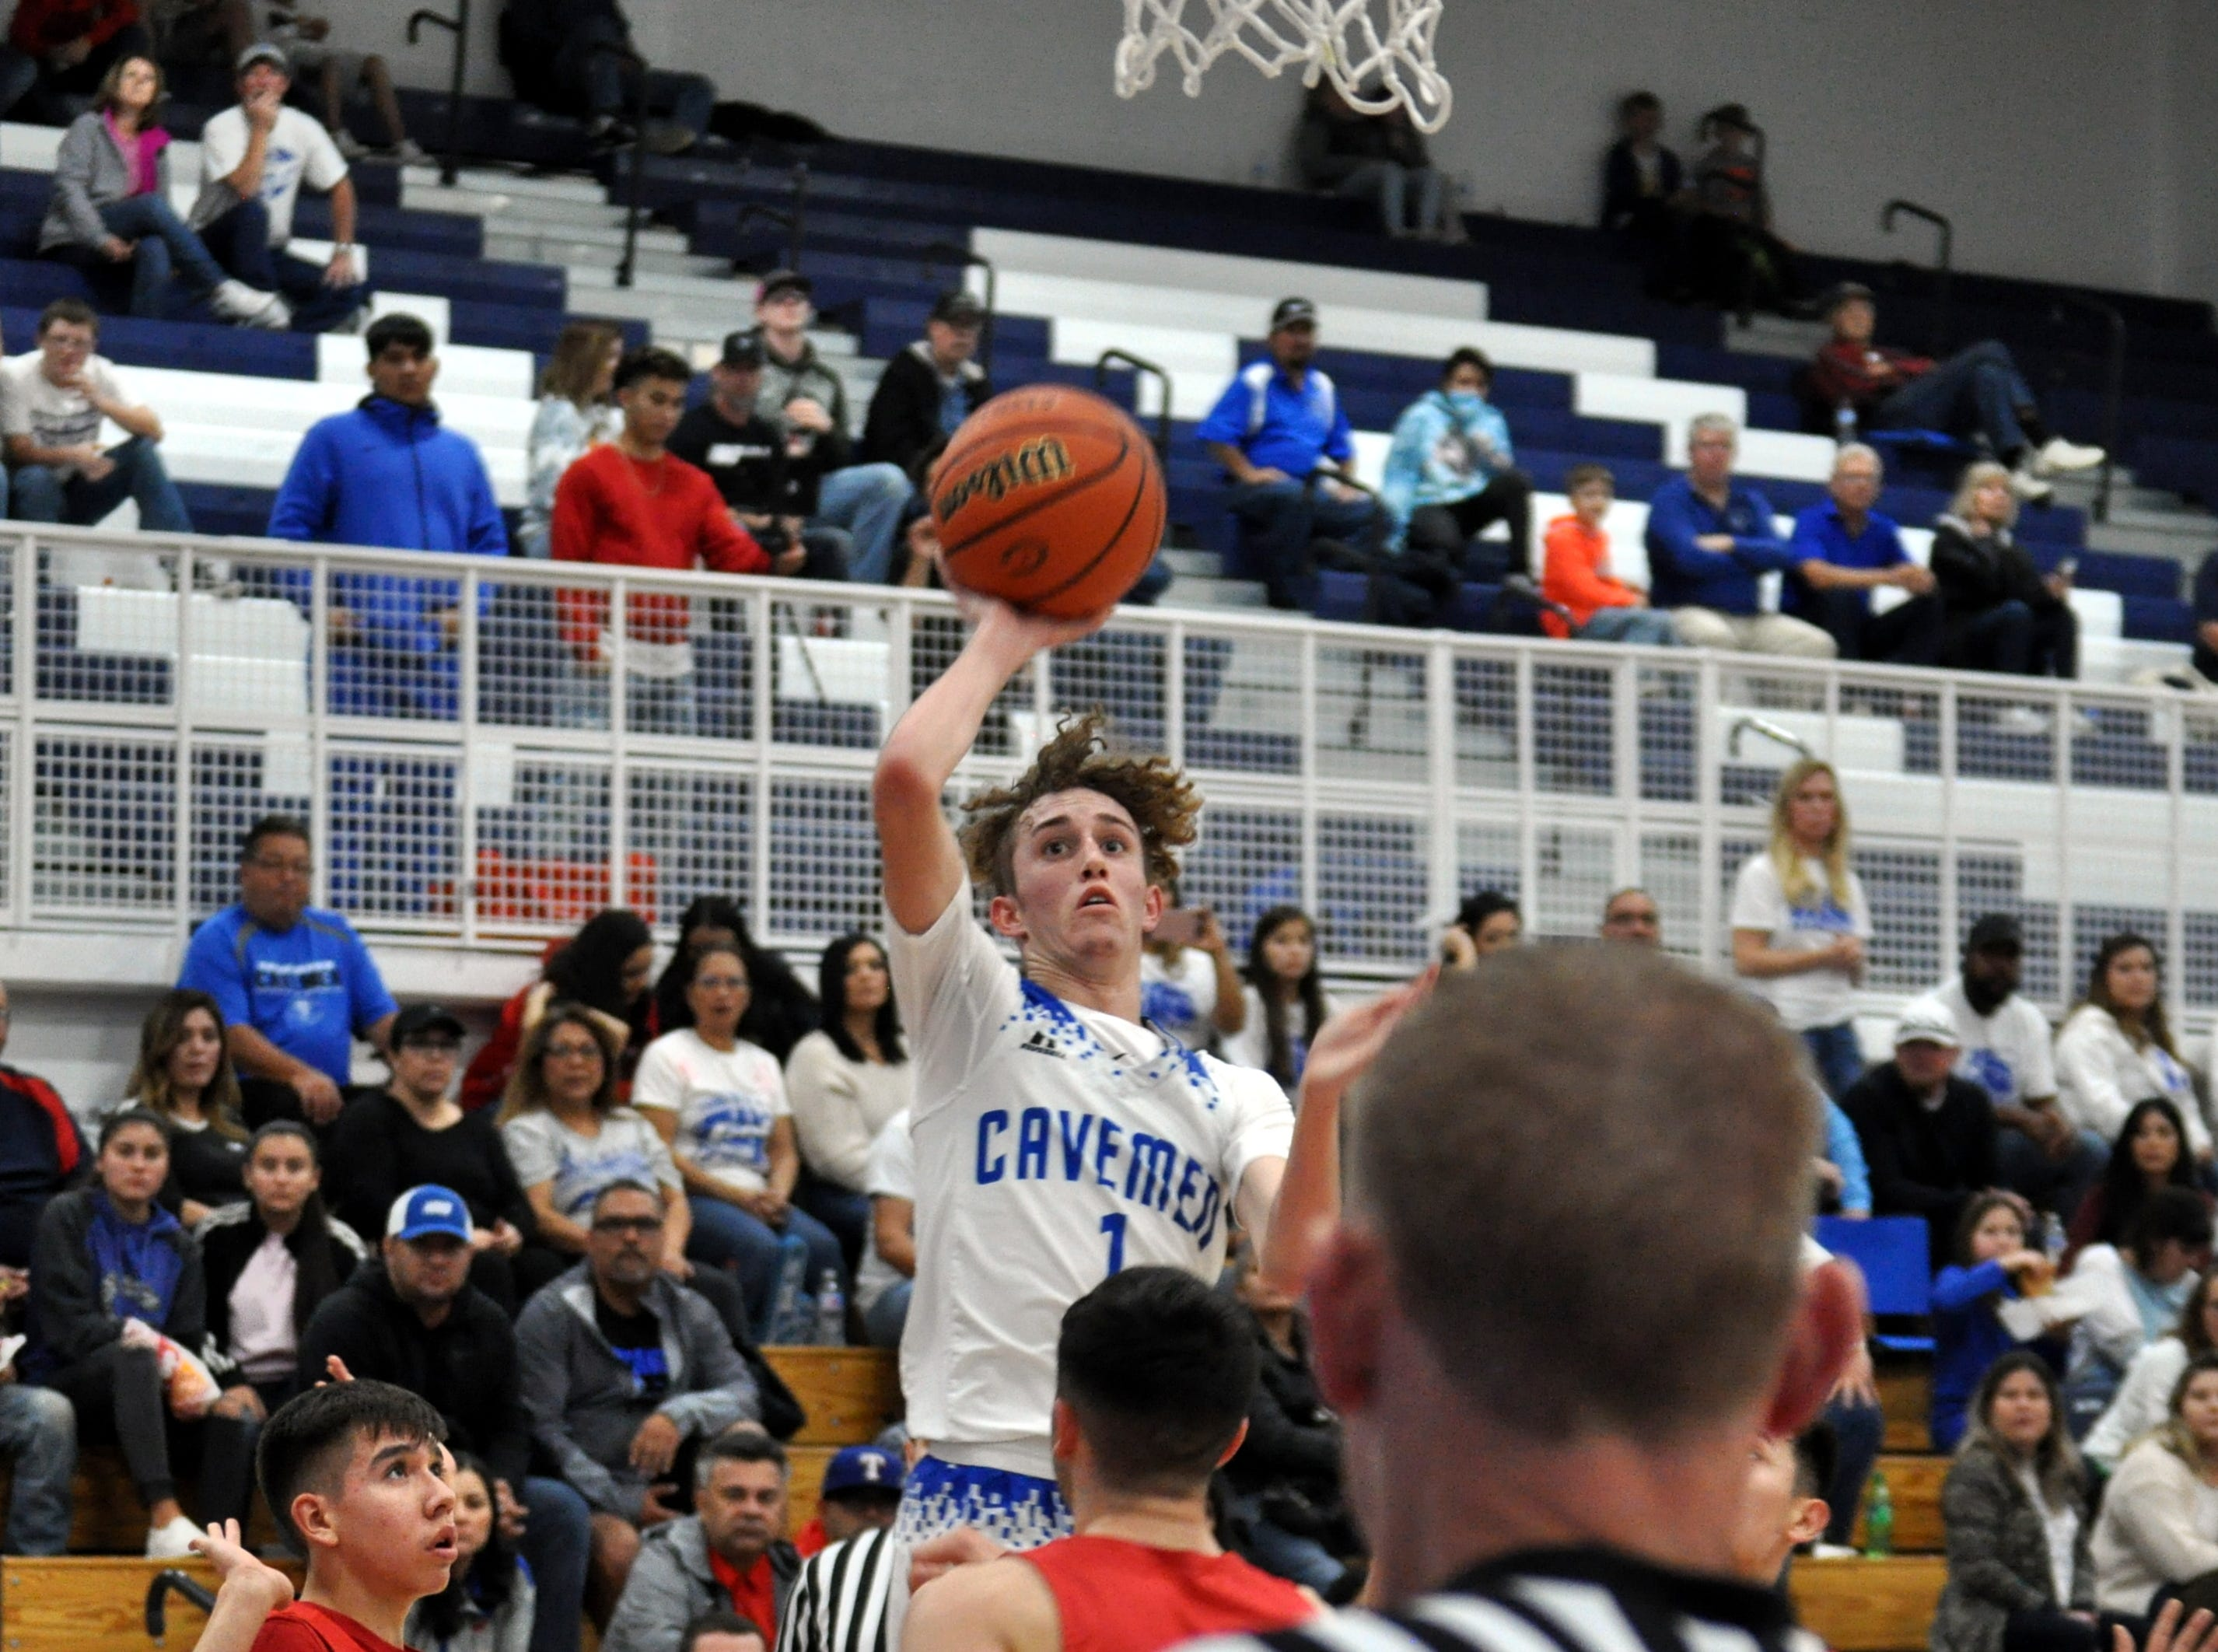 Josh Sillas gets off an shot during Friday's game against West Mesa.